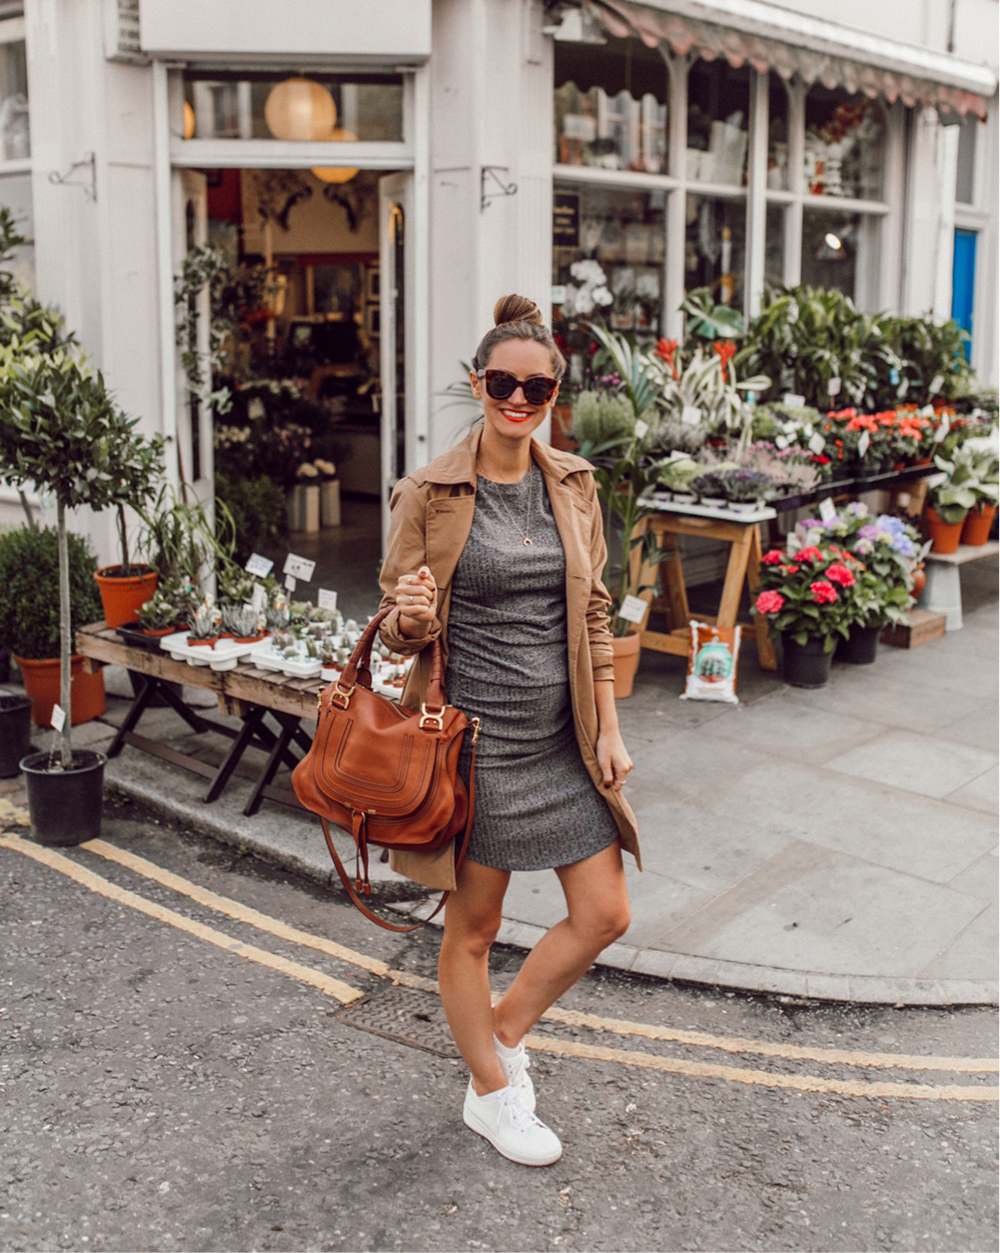 livvyland-blog-olivia-watson-princess-cruise-british-isles-london-united-kingdom-notting-hill-what-to-wear-pack-itinerary-pregnancy-style-2